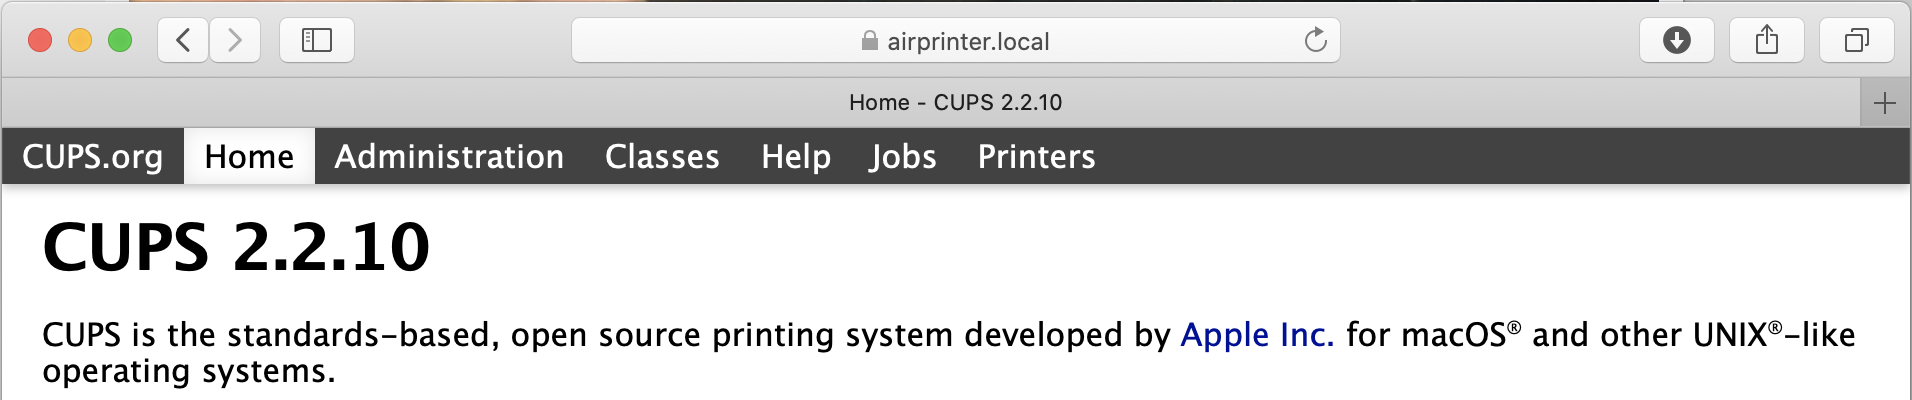 Making a printserver with Apple AirPrint support